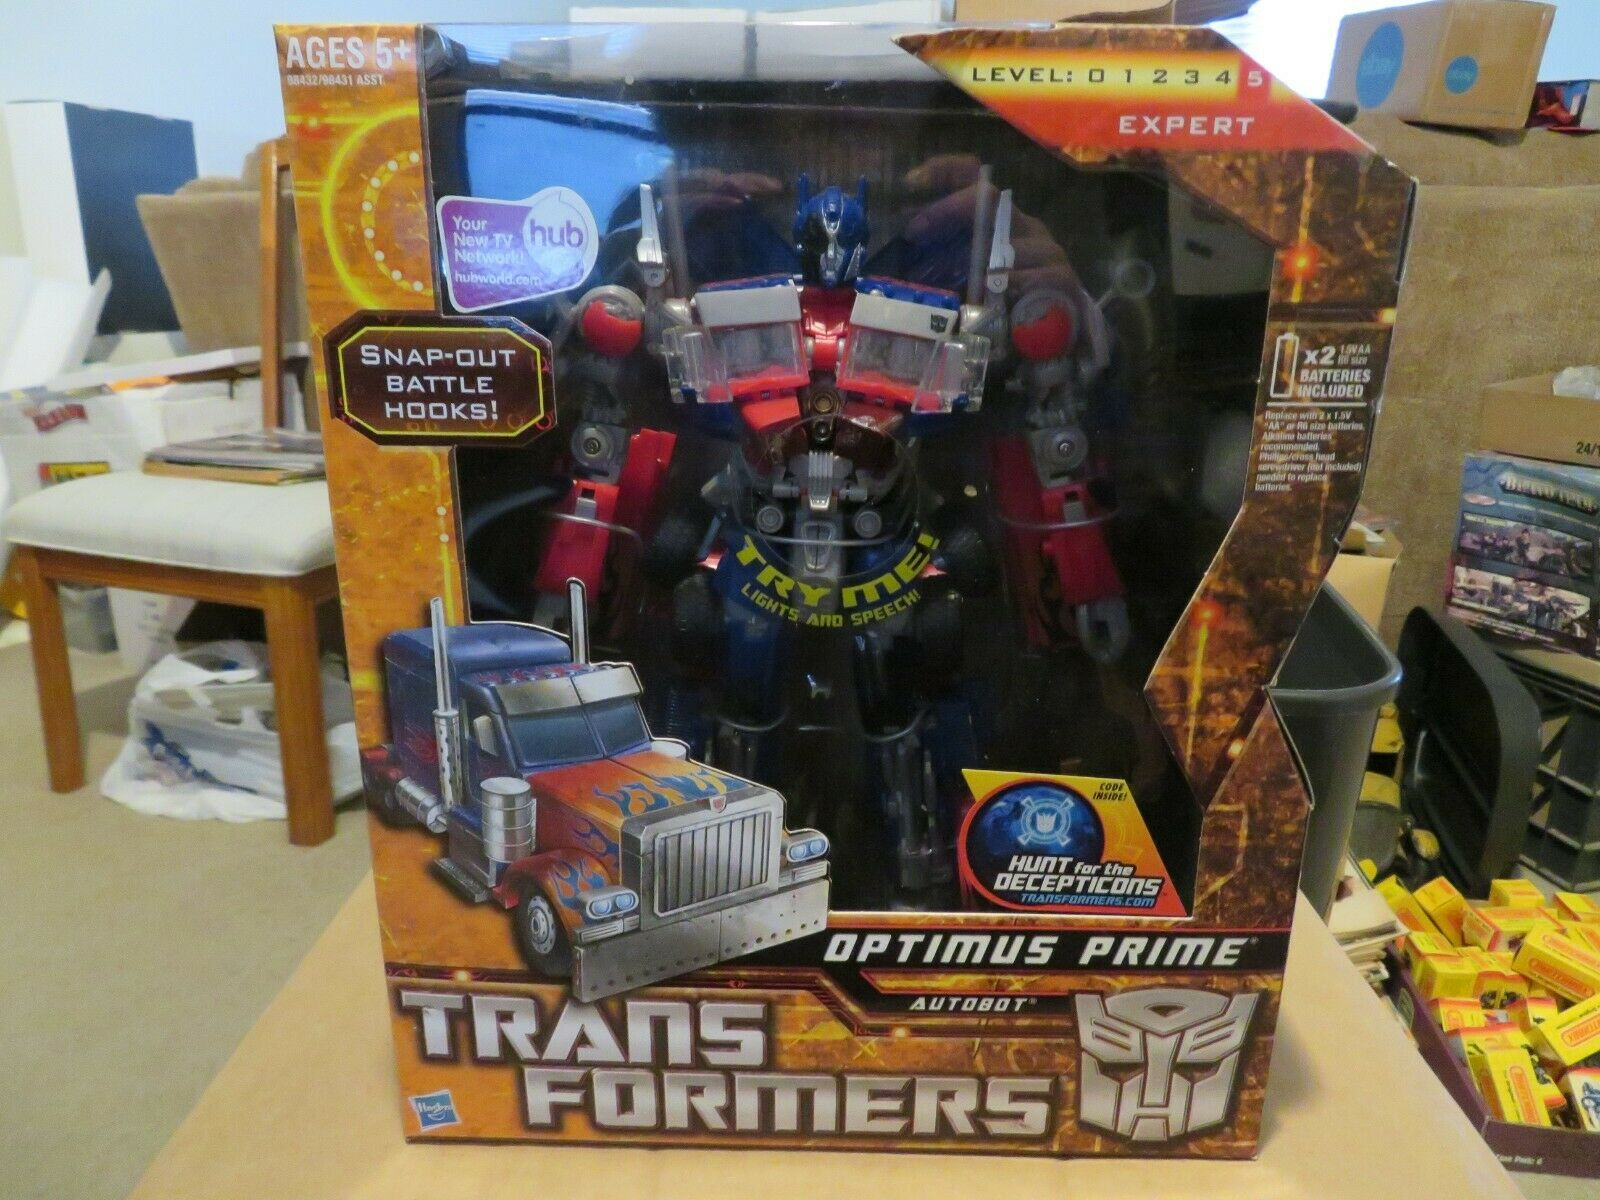 Hasbro Transformers Leader Class Autobot Optimus Prime Truck Mode 2009 MISB